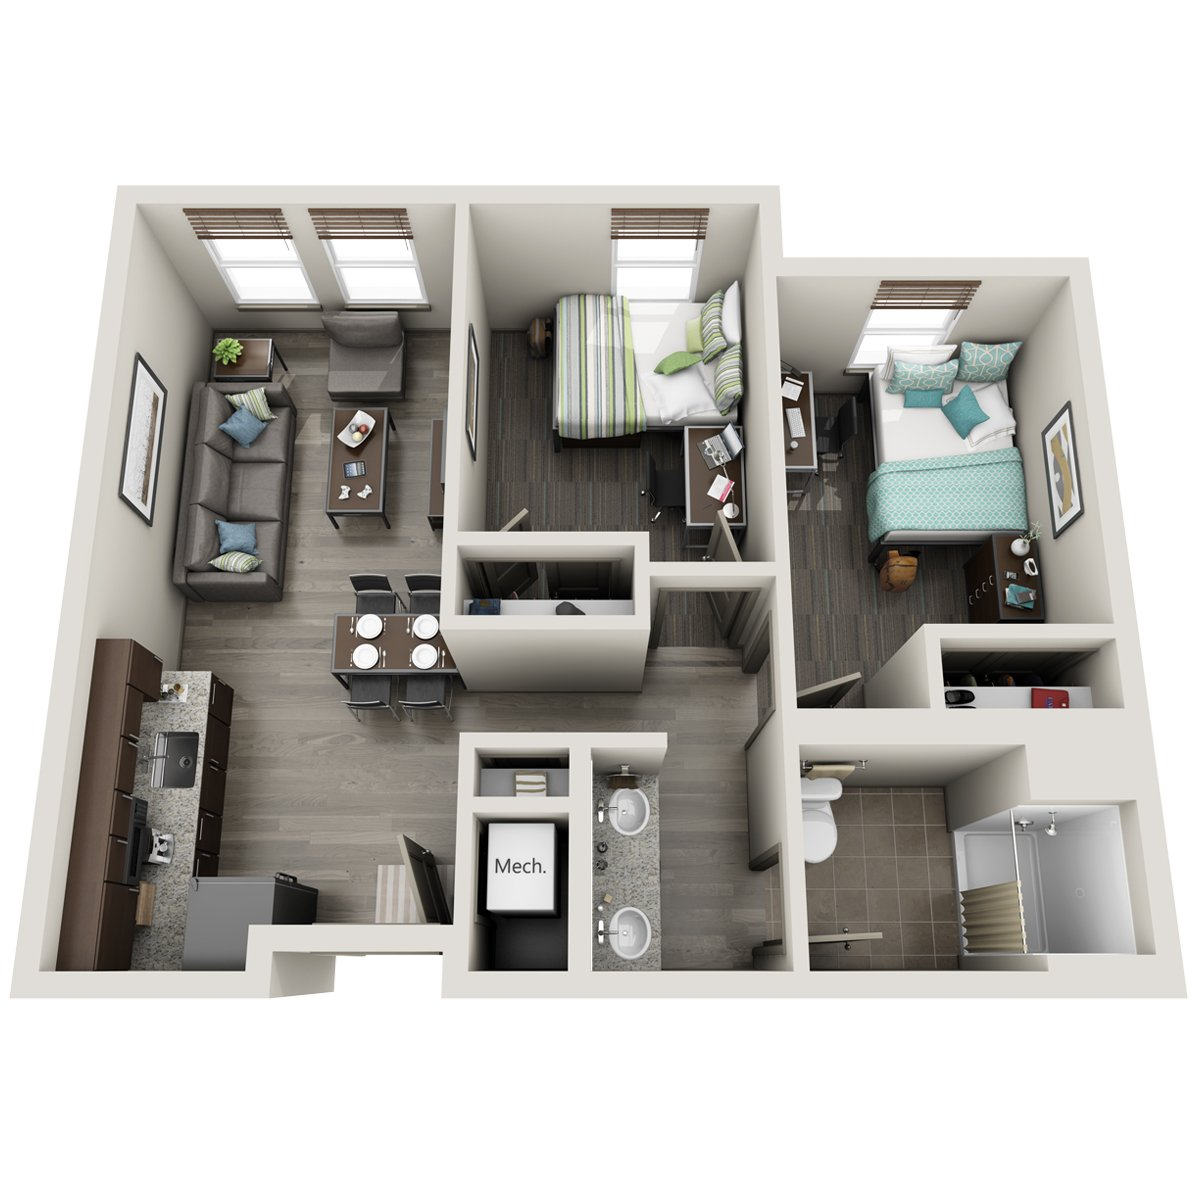 uk housing reslife on twitter the 2 bedroom deluxe suite is coming to limestone park 2 in the fall httpstcoy5v4b7sf3x - Limestone Apartment 2016